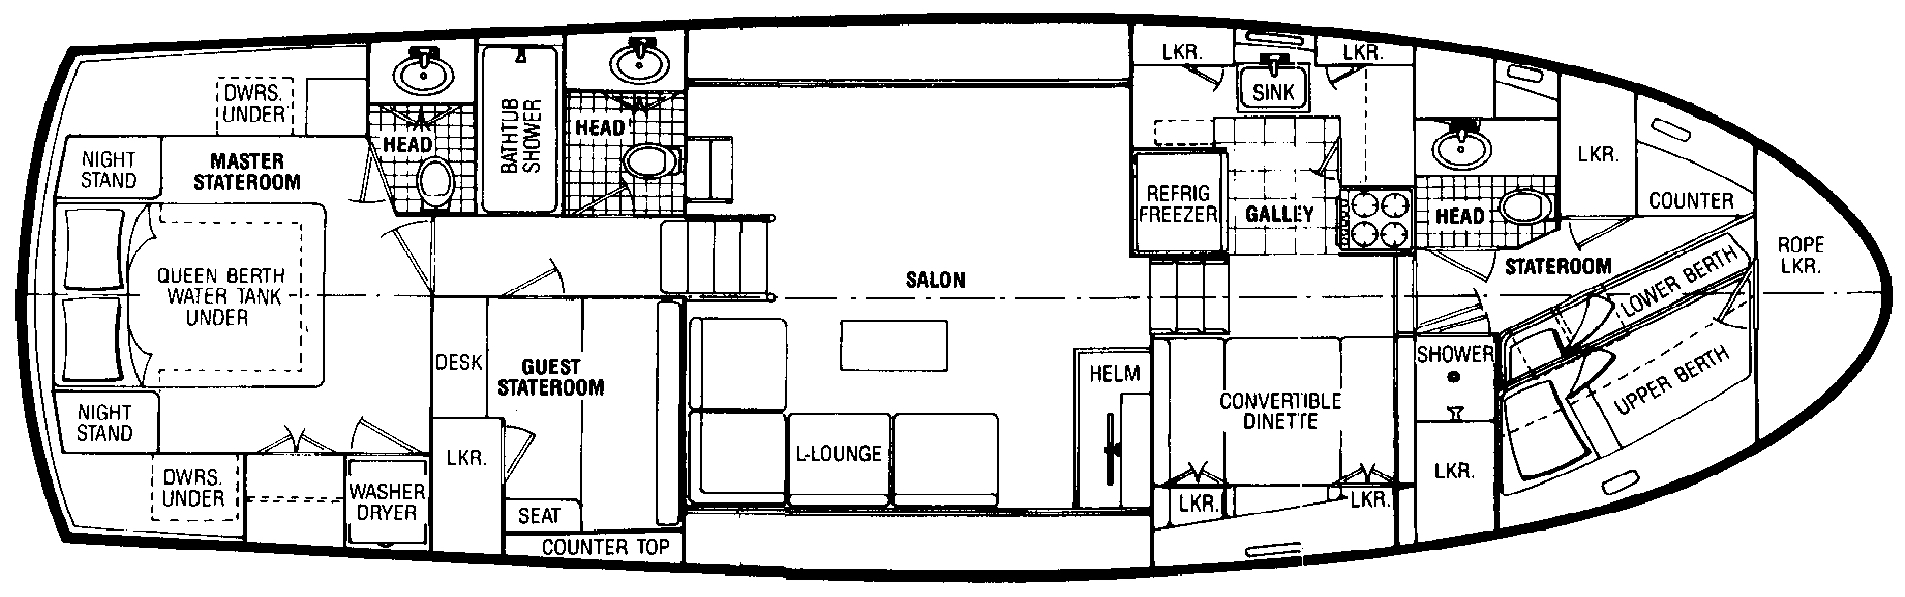 Atlantic 47 Motor Yacht Floor Plan 2